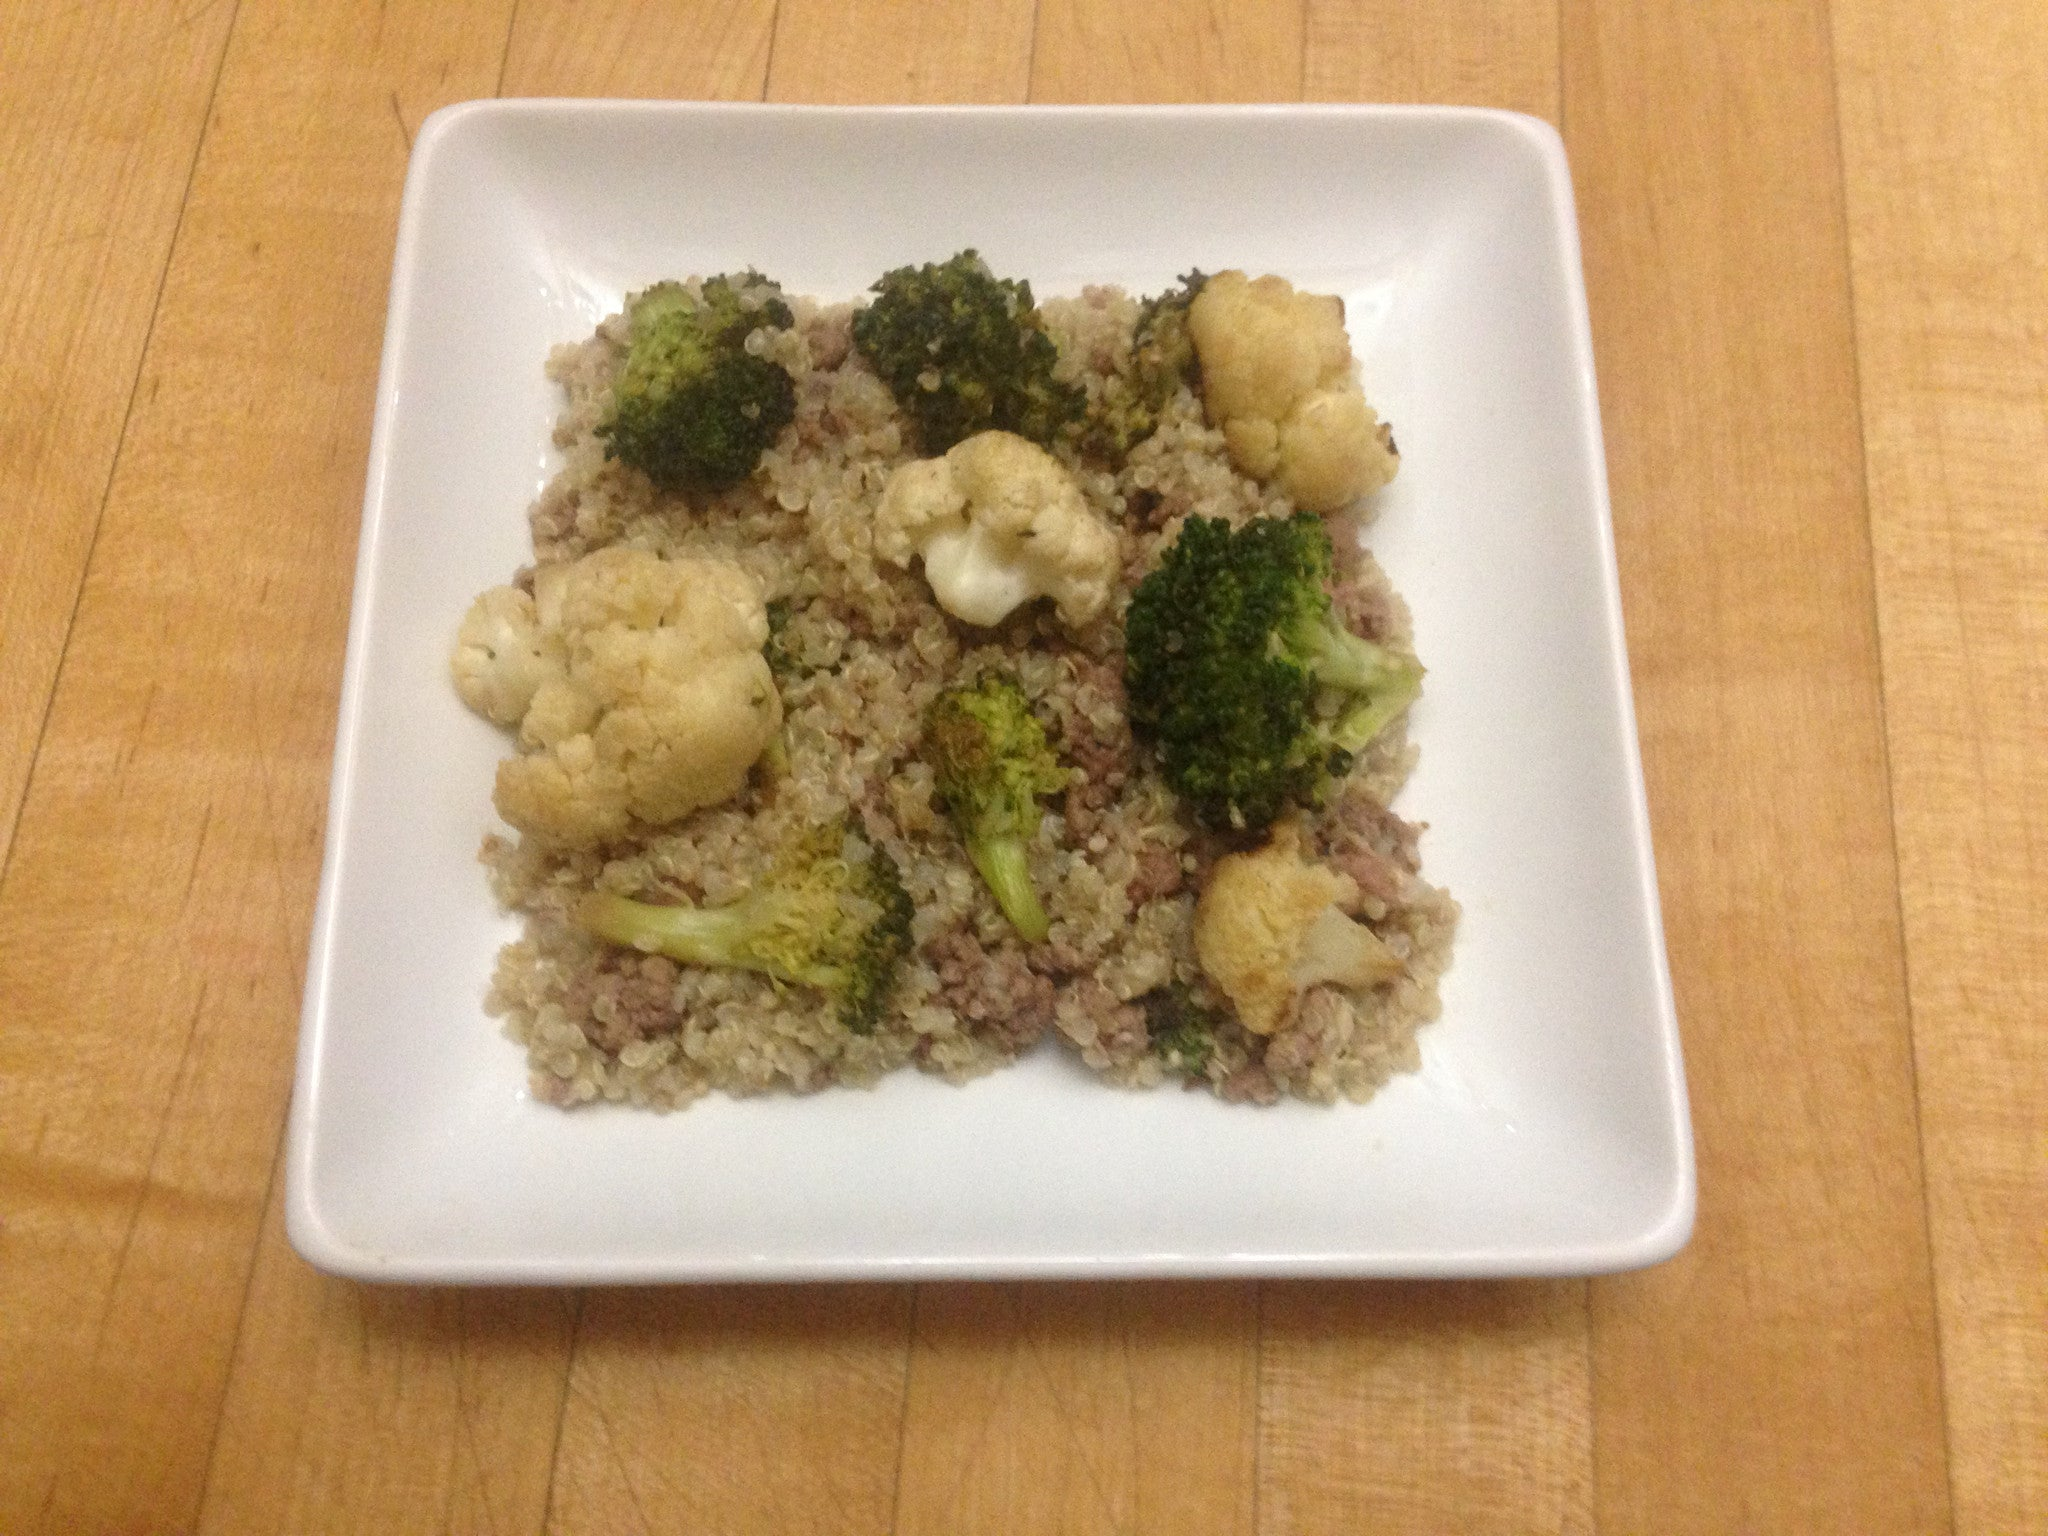 pork-fried-quinoa-with-broccoli-&-cauliflower-skillit-simple-easy-recipes-dinner-skillet